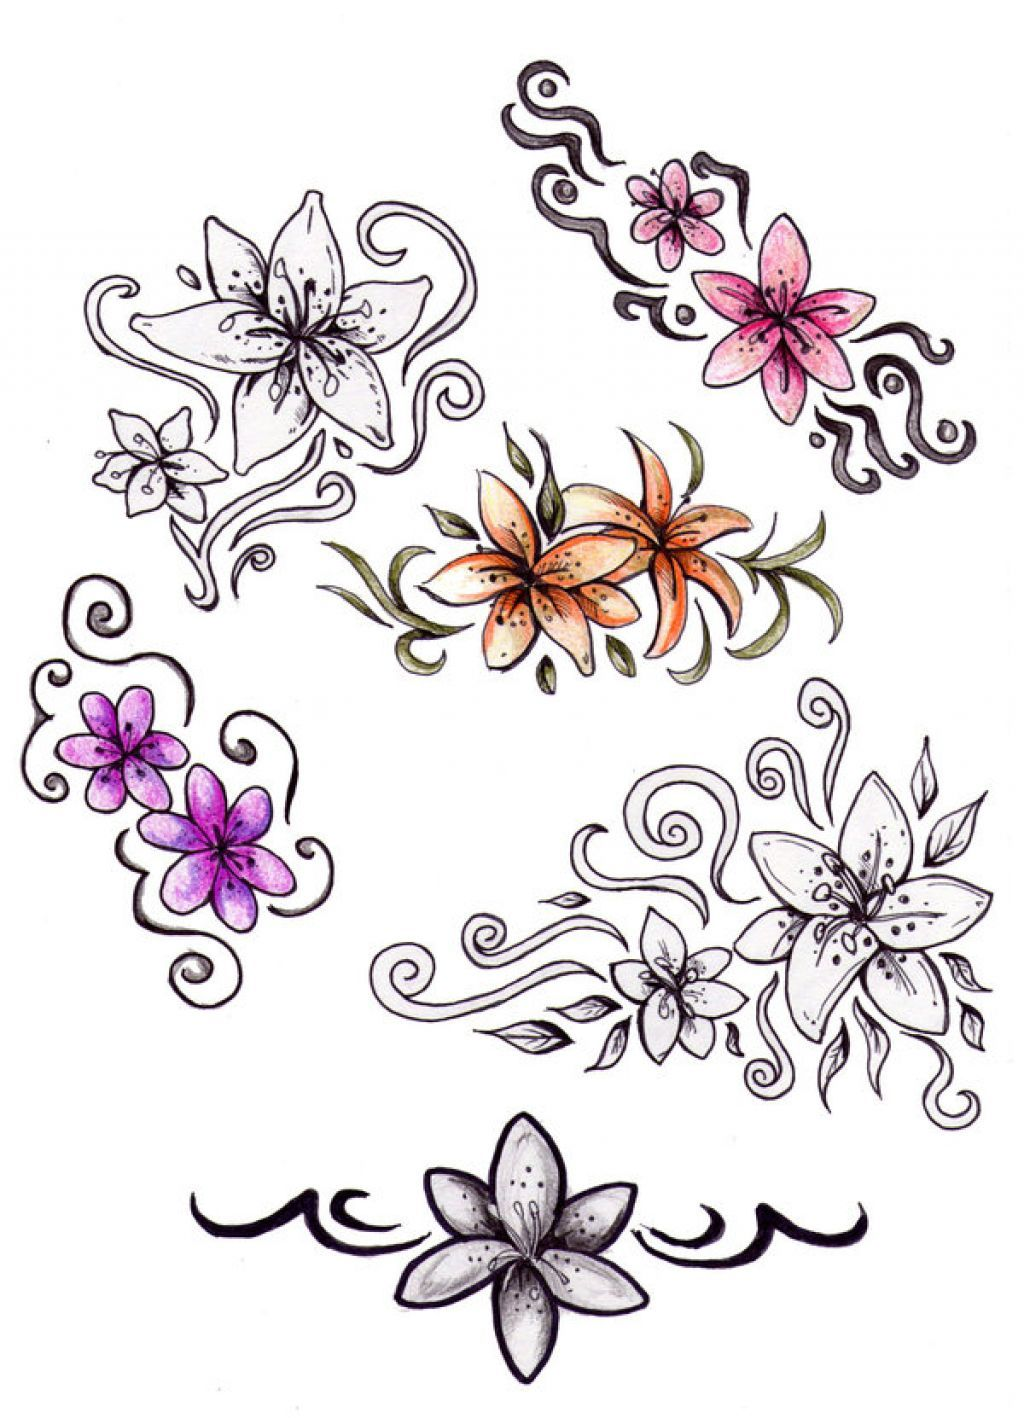 Jasmine flower tattoo designs tattoo ink design tattoo jasmine flower tattoo designs tattoo ink design izmirmasajfo